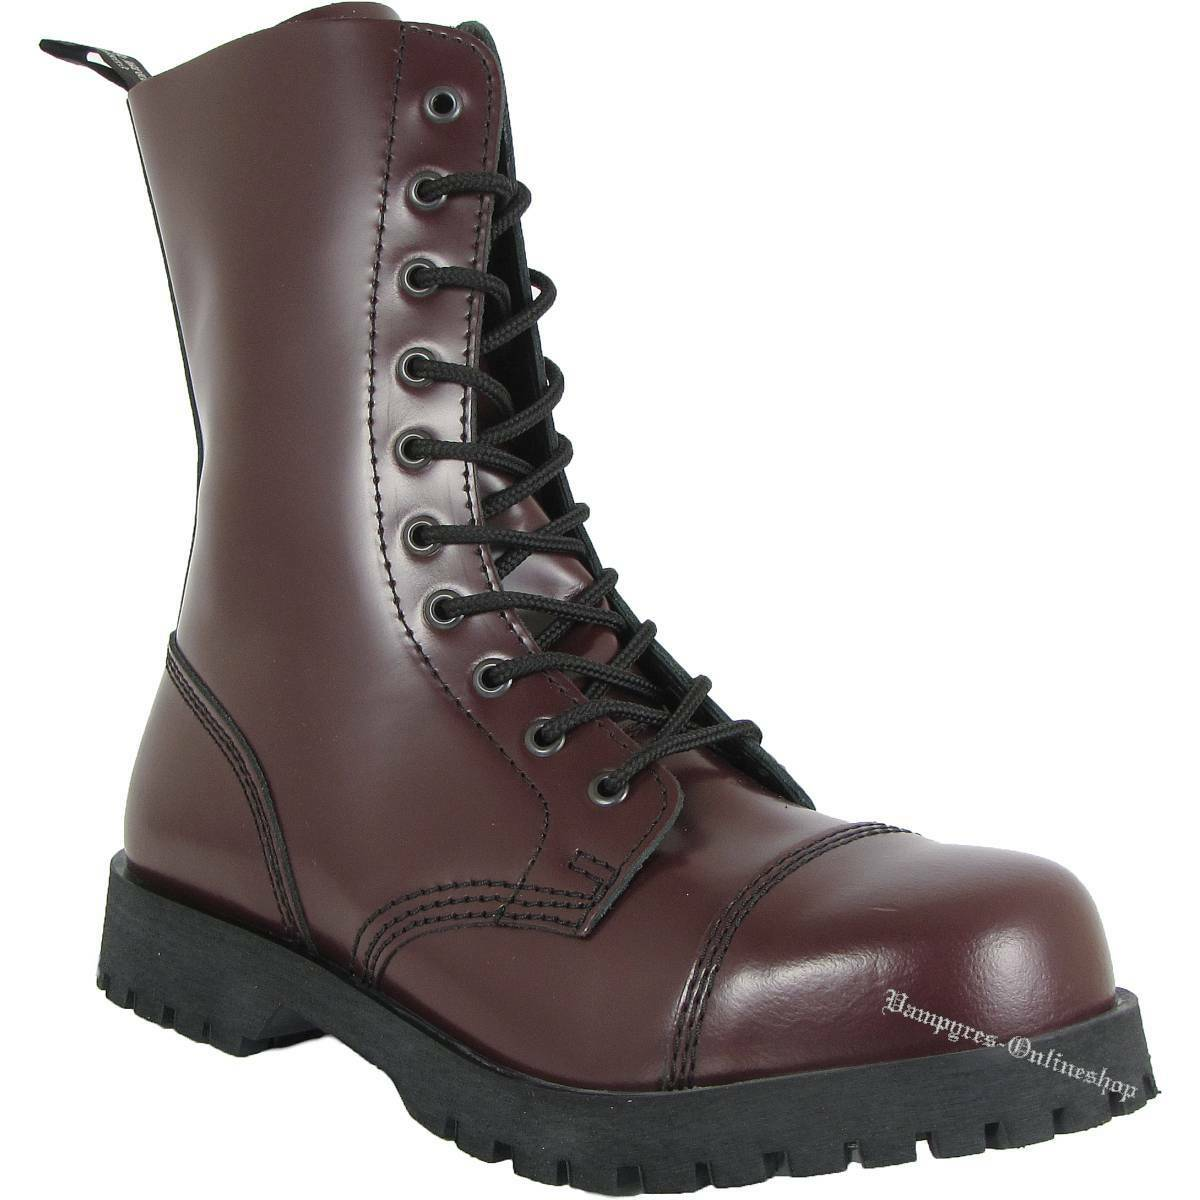 Boots & Braces Stiefel 10-Loch Cherry red Leder Rangers And Stahlkappen Oxblood